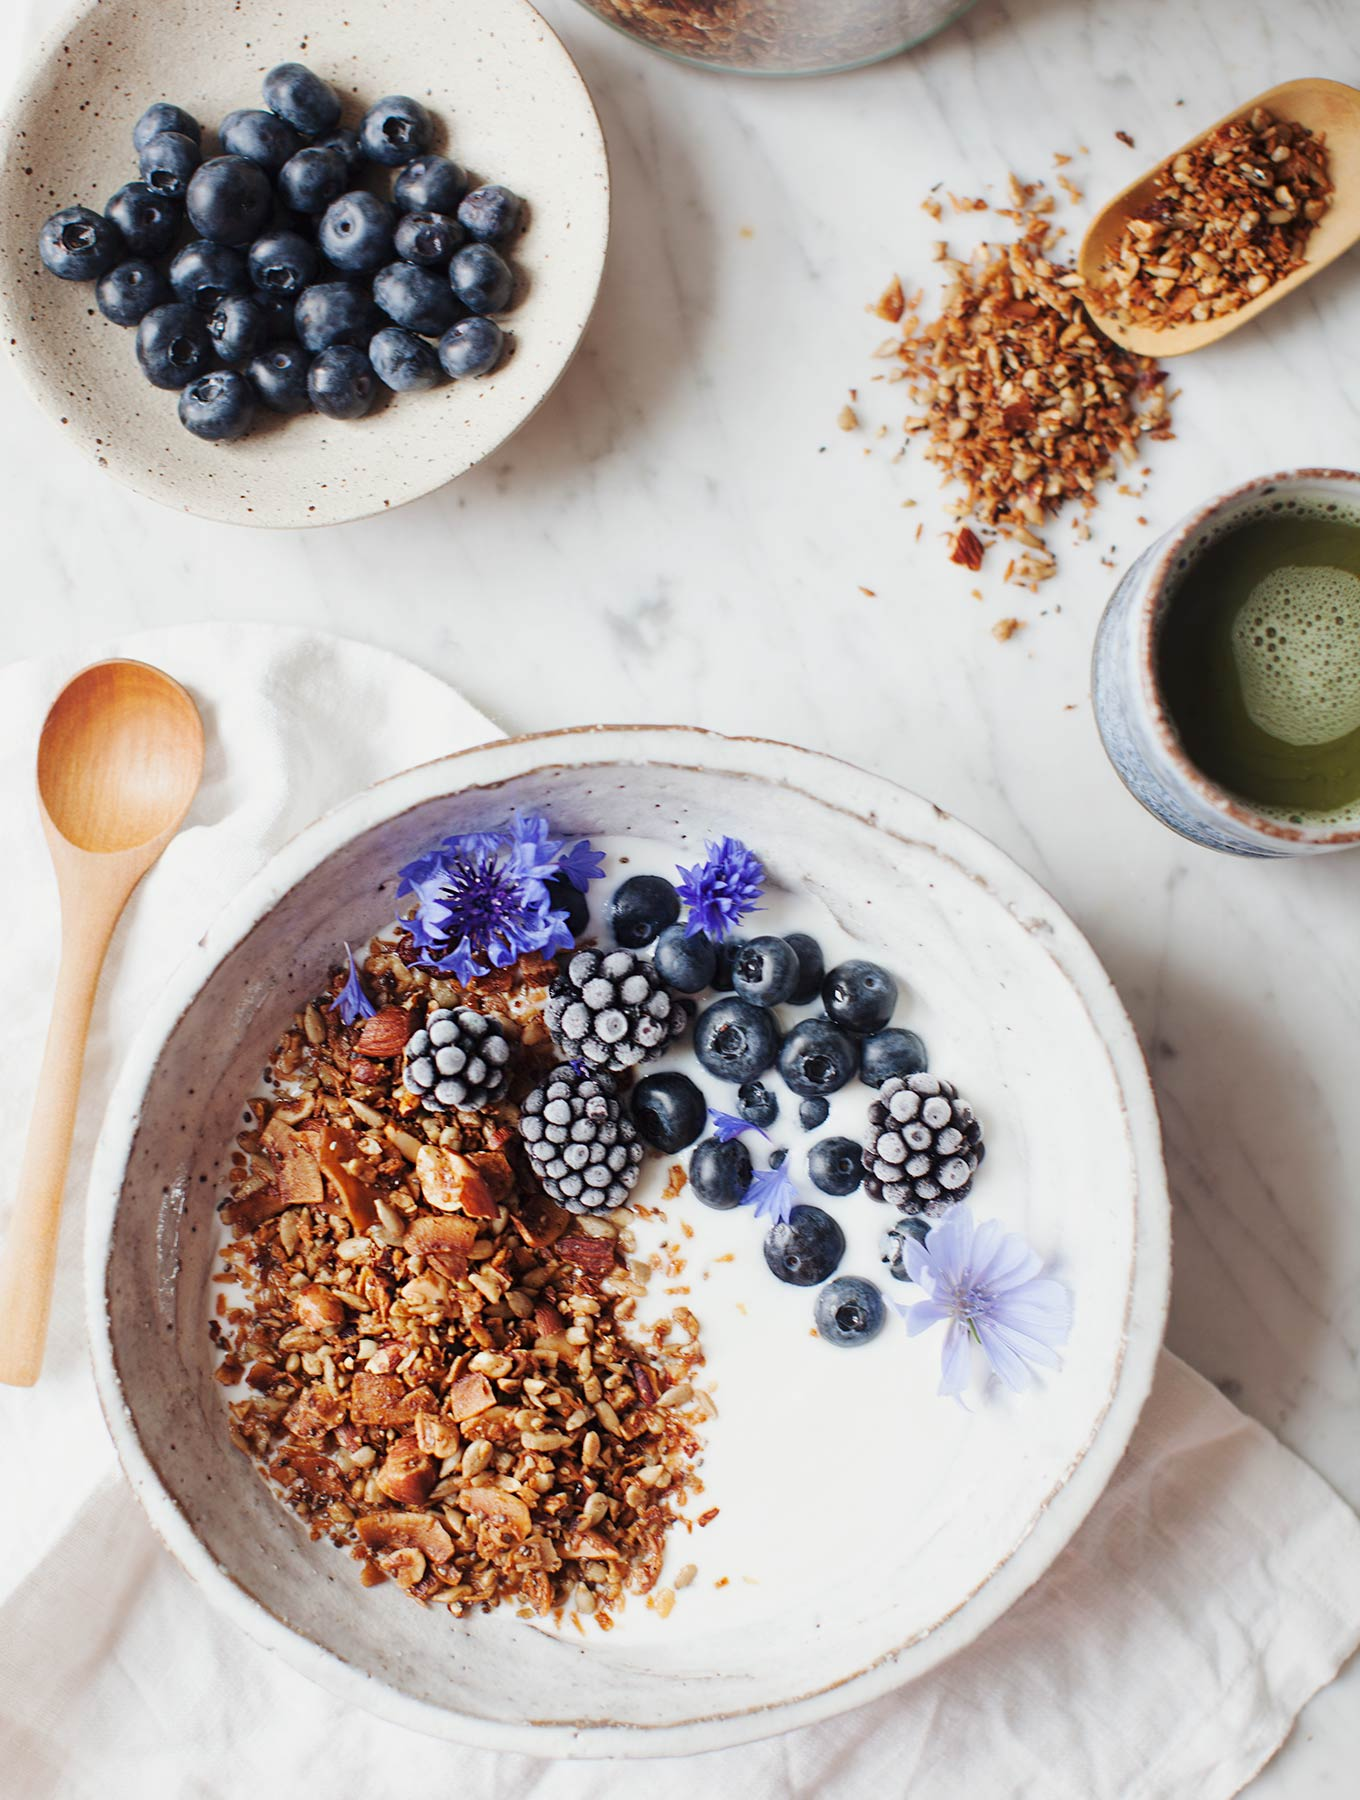 NoMad Luxuries maple cinnamon granola bowl with edible flowers for breakfast and sunday mornings